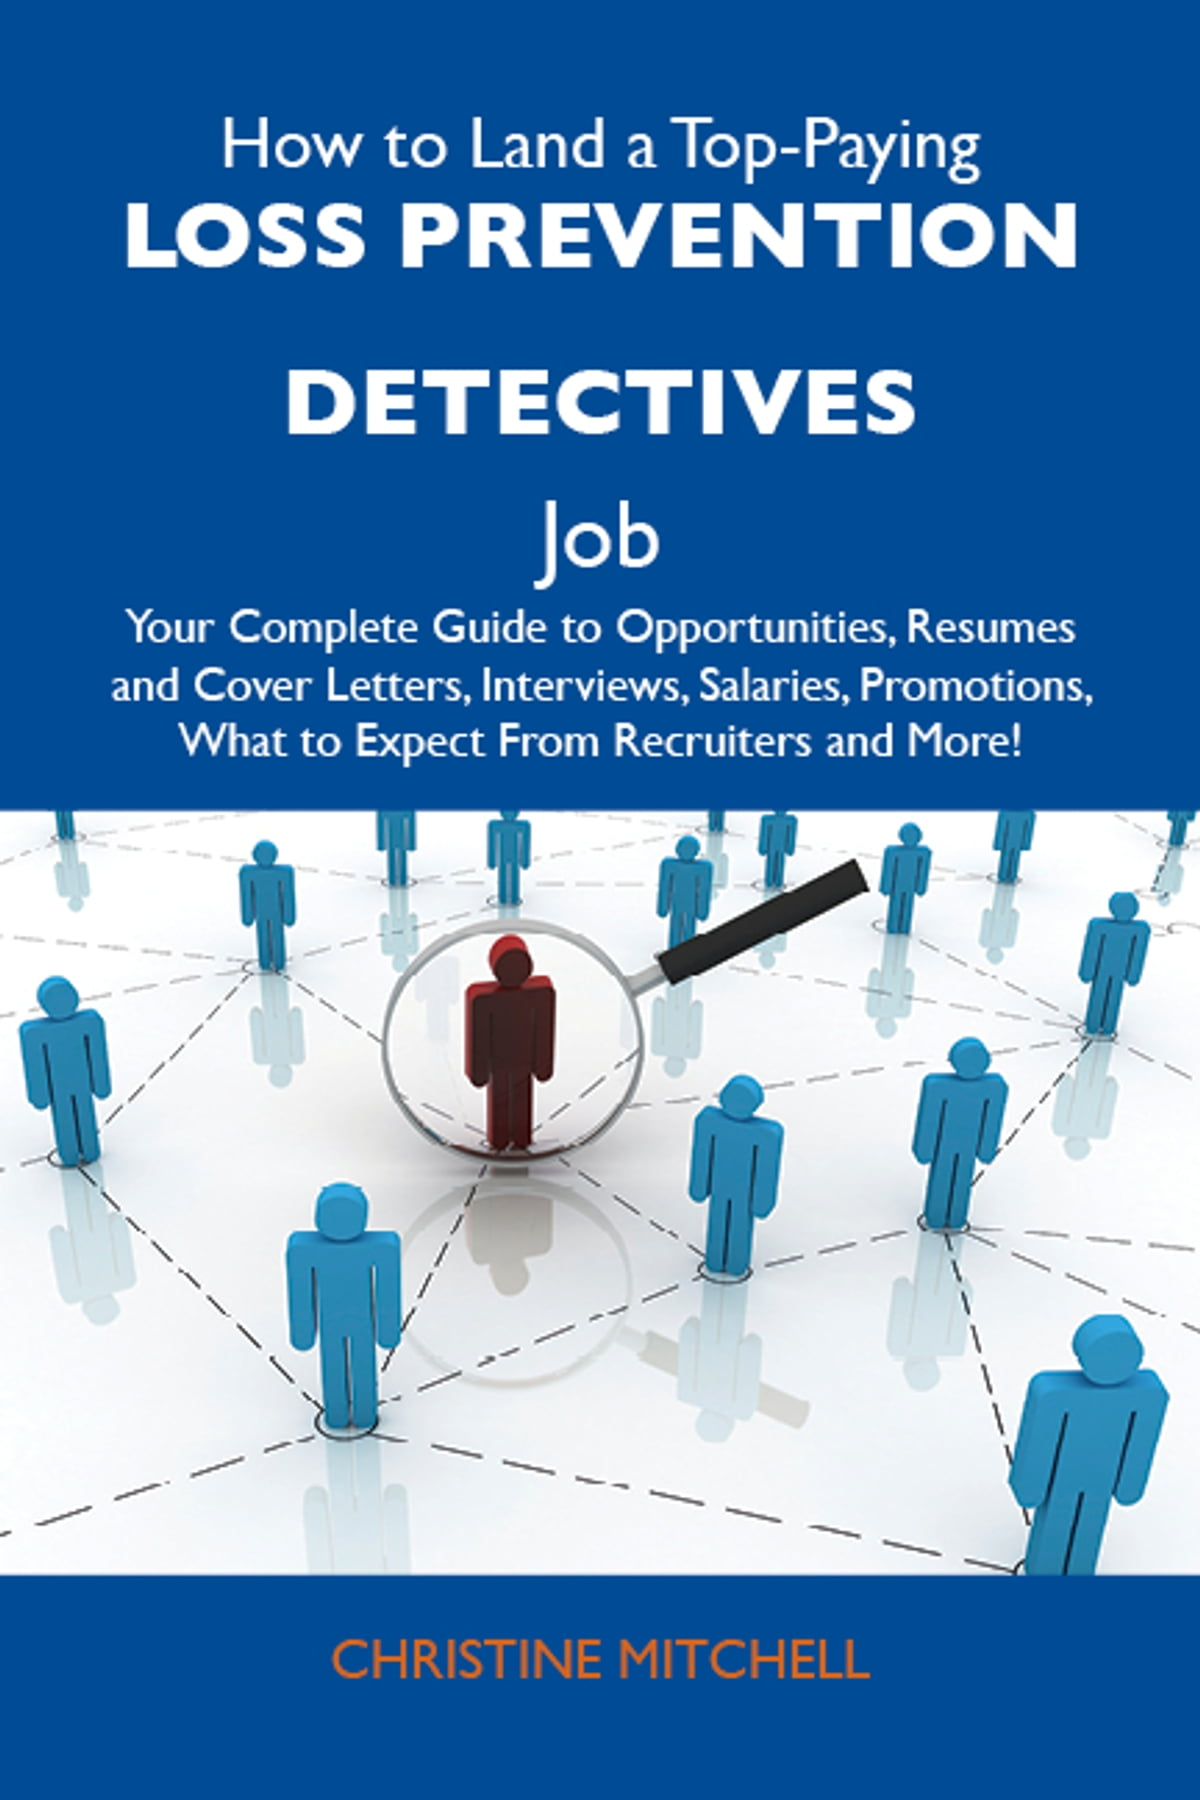 How to Land a Top-Paying Loss prevention detectives Job: Your Complete  Guide to Opportunities, Resumes and Cover Letters, Interviews, Salaries, ...